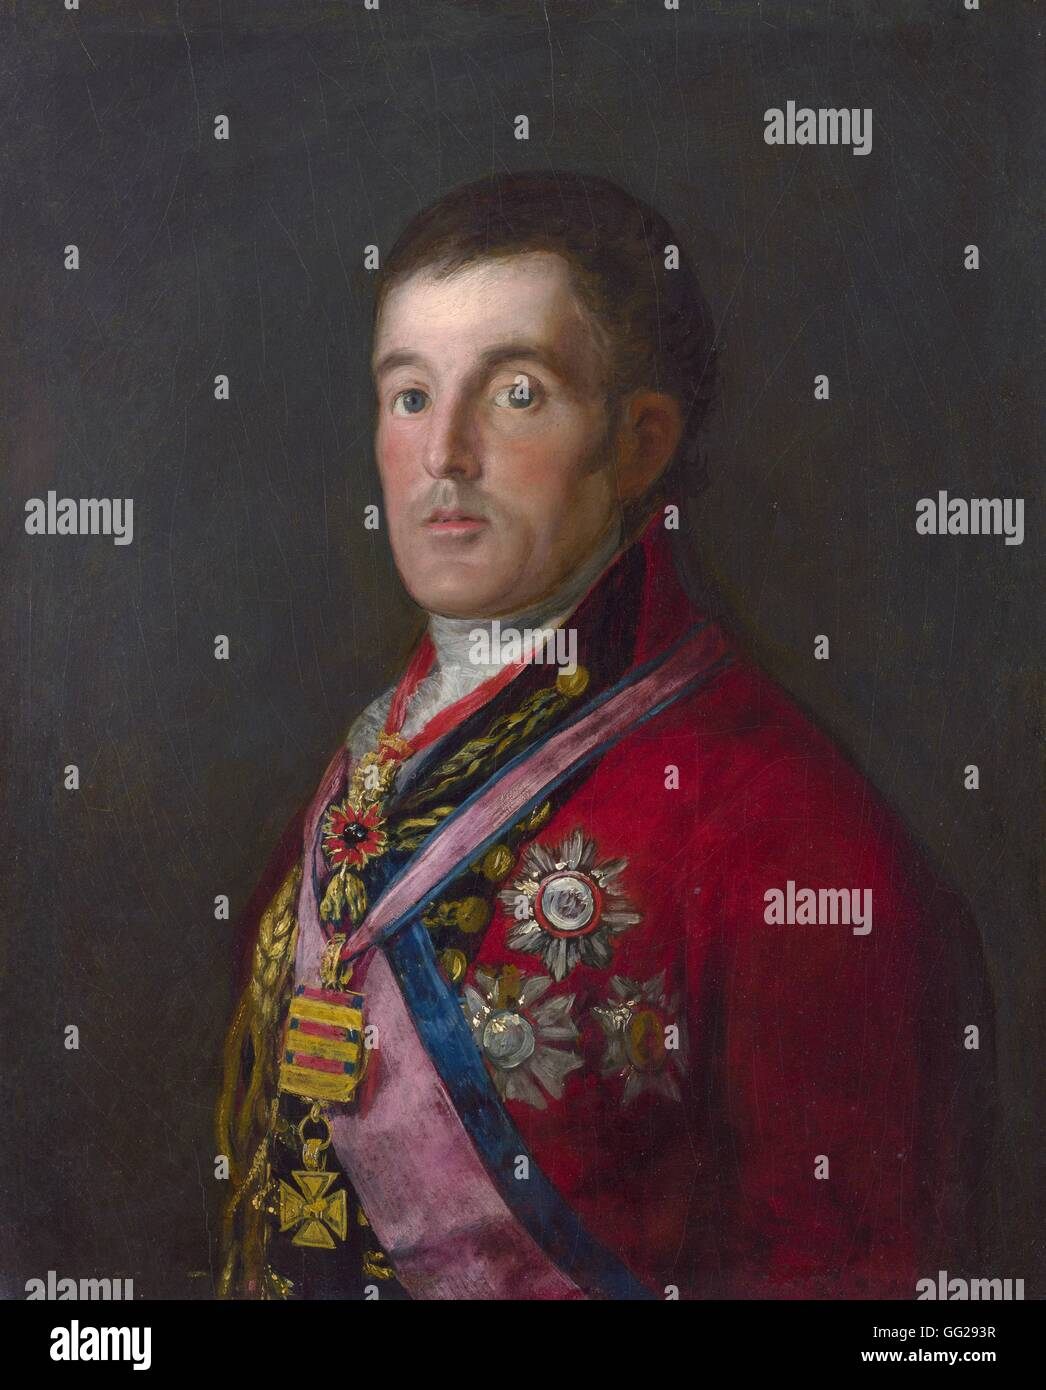 Francisco de Goya y Lucientes  (1746-1828) Spanish school The Duke of Wellington (1769-1852)  El Duque de Wellington - Stock Image